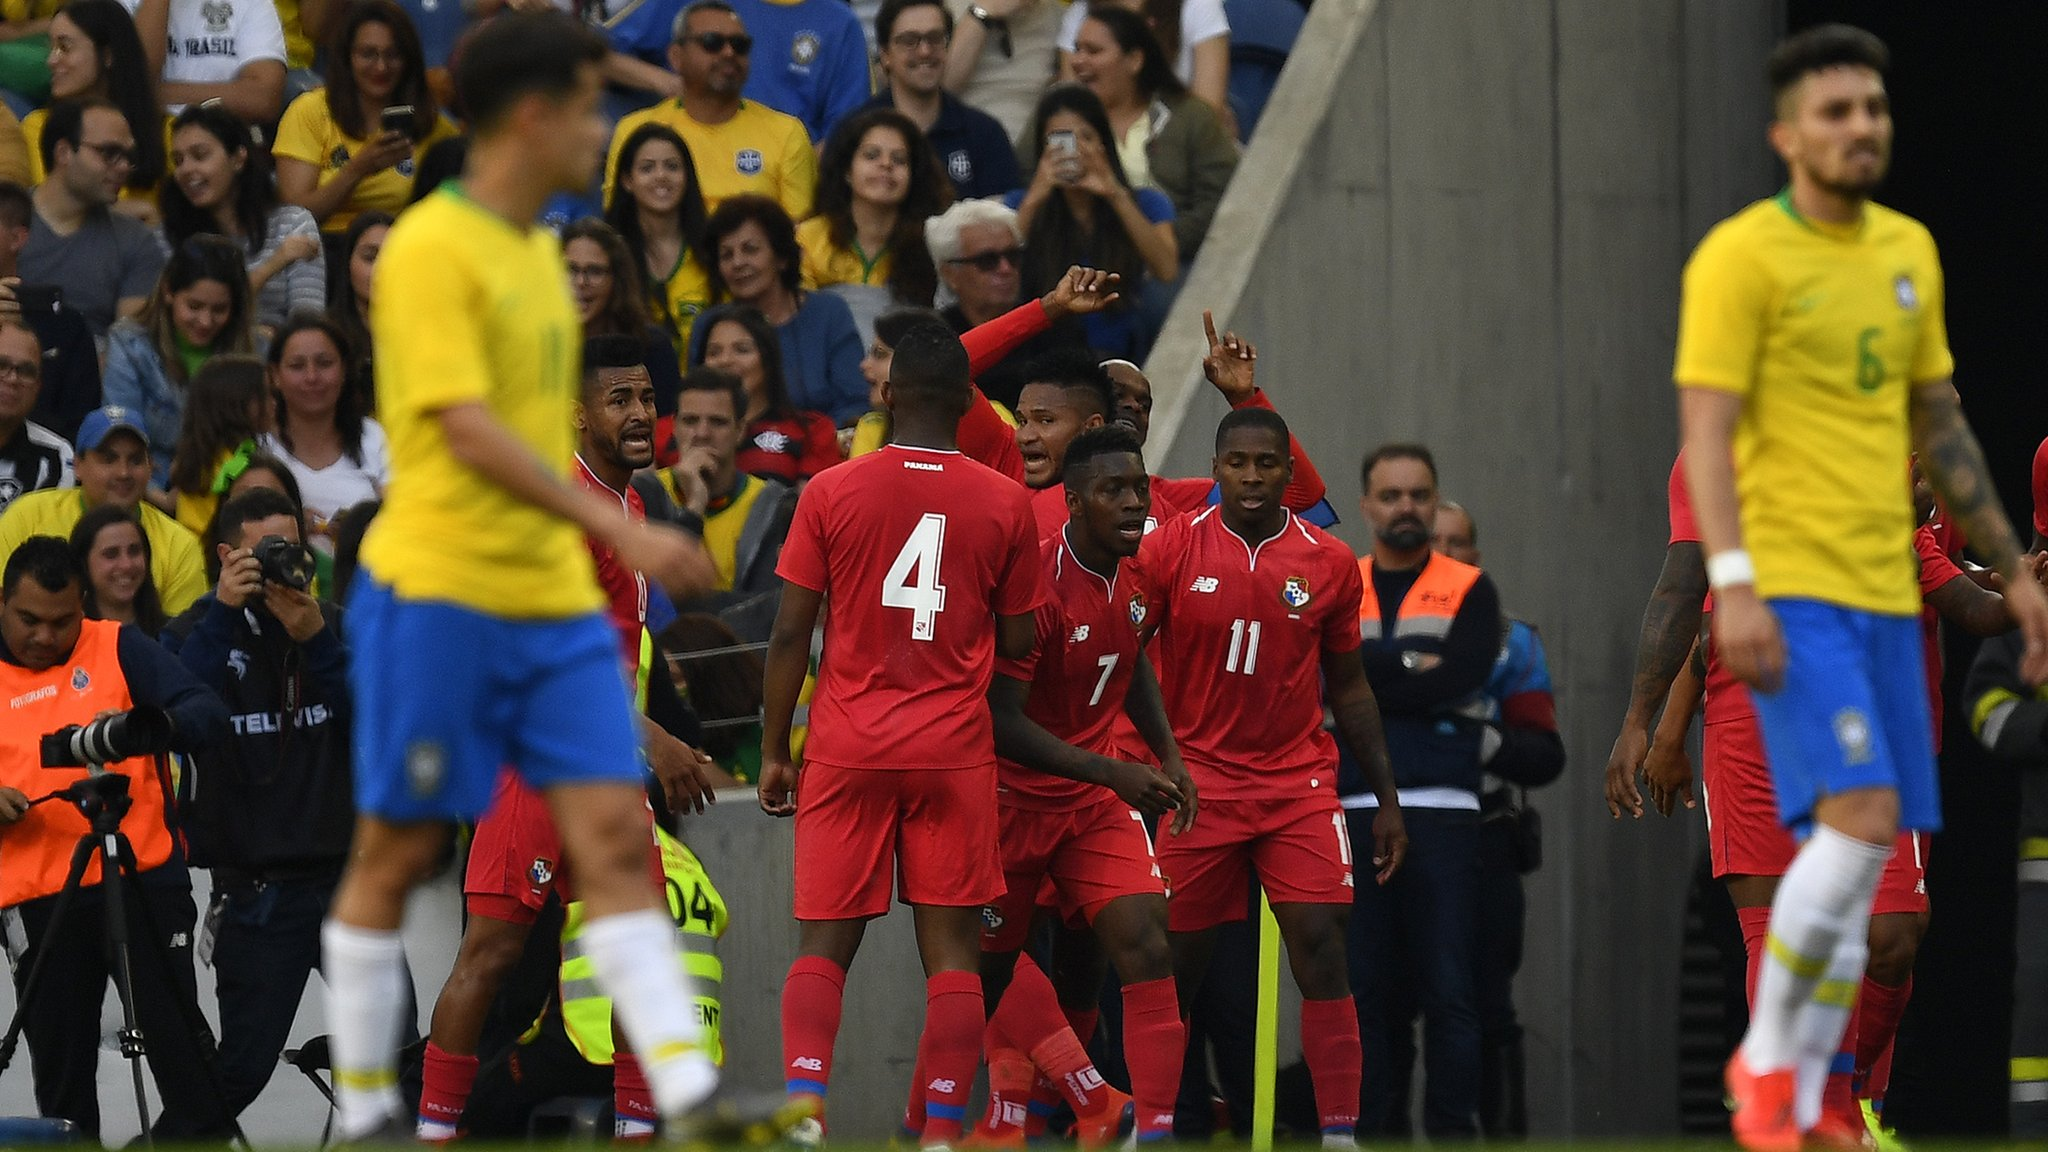 Brazil 1-1 Panama: Ederson, Firmino and Richarlison feature in surprise draw